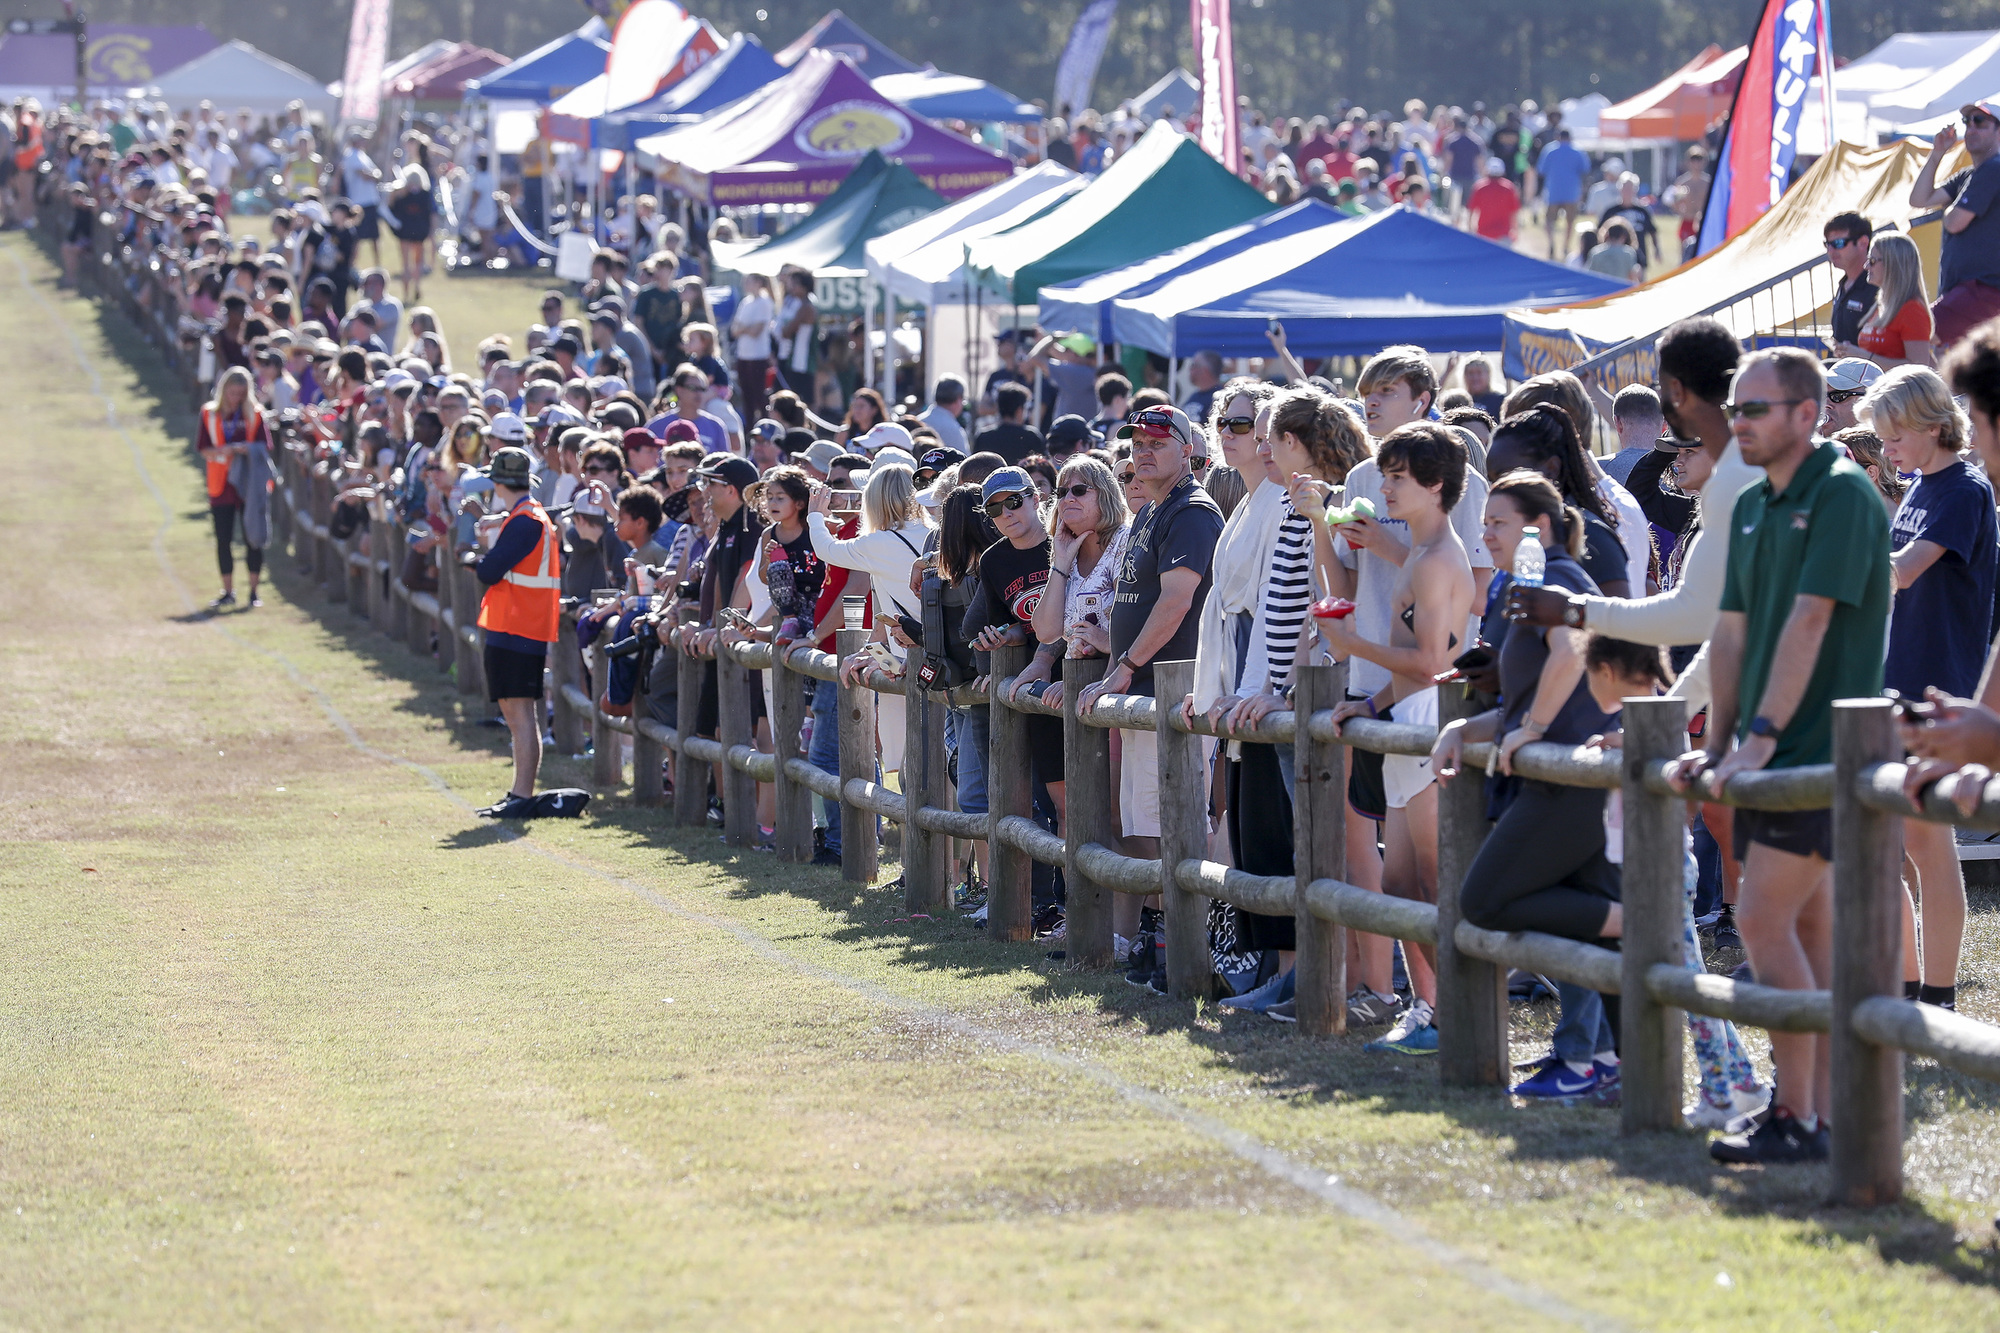 Image of a cross-country event at Apalachee Regional Park